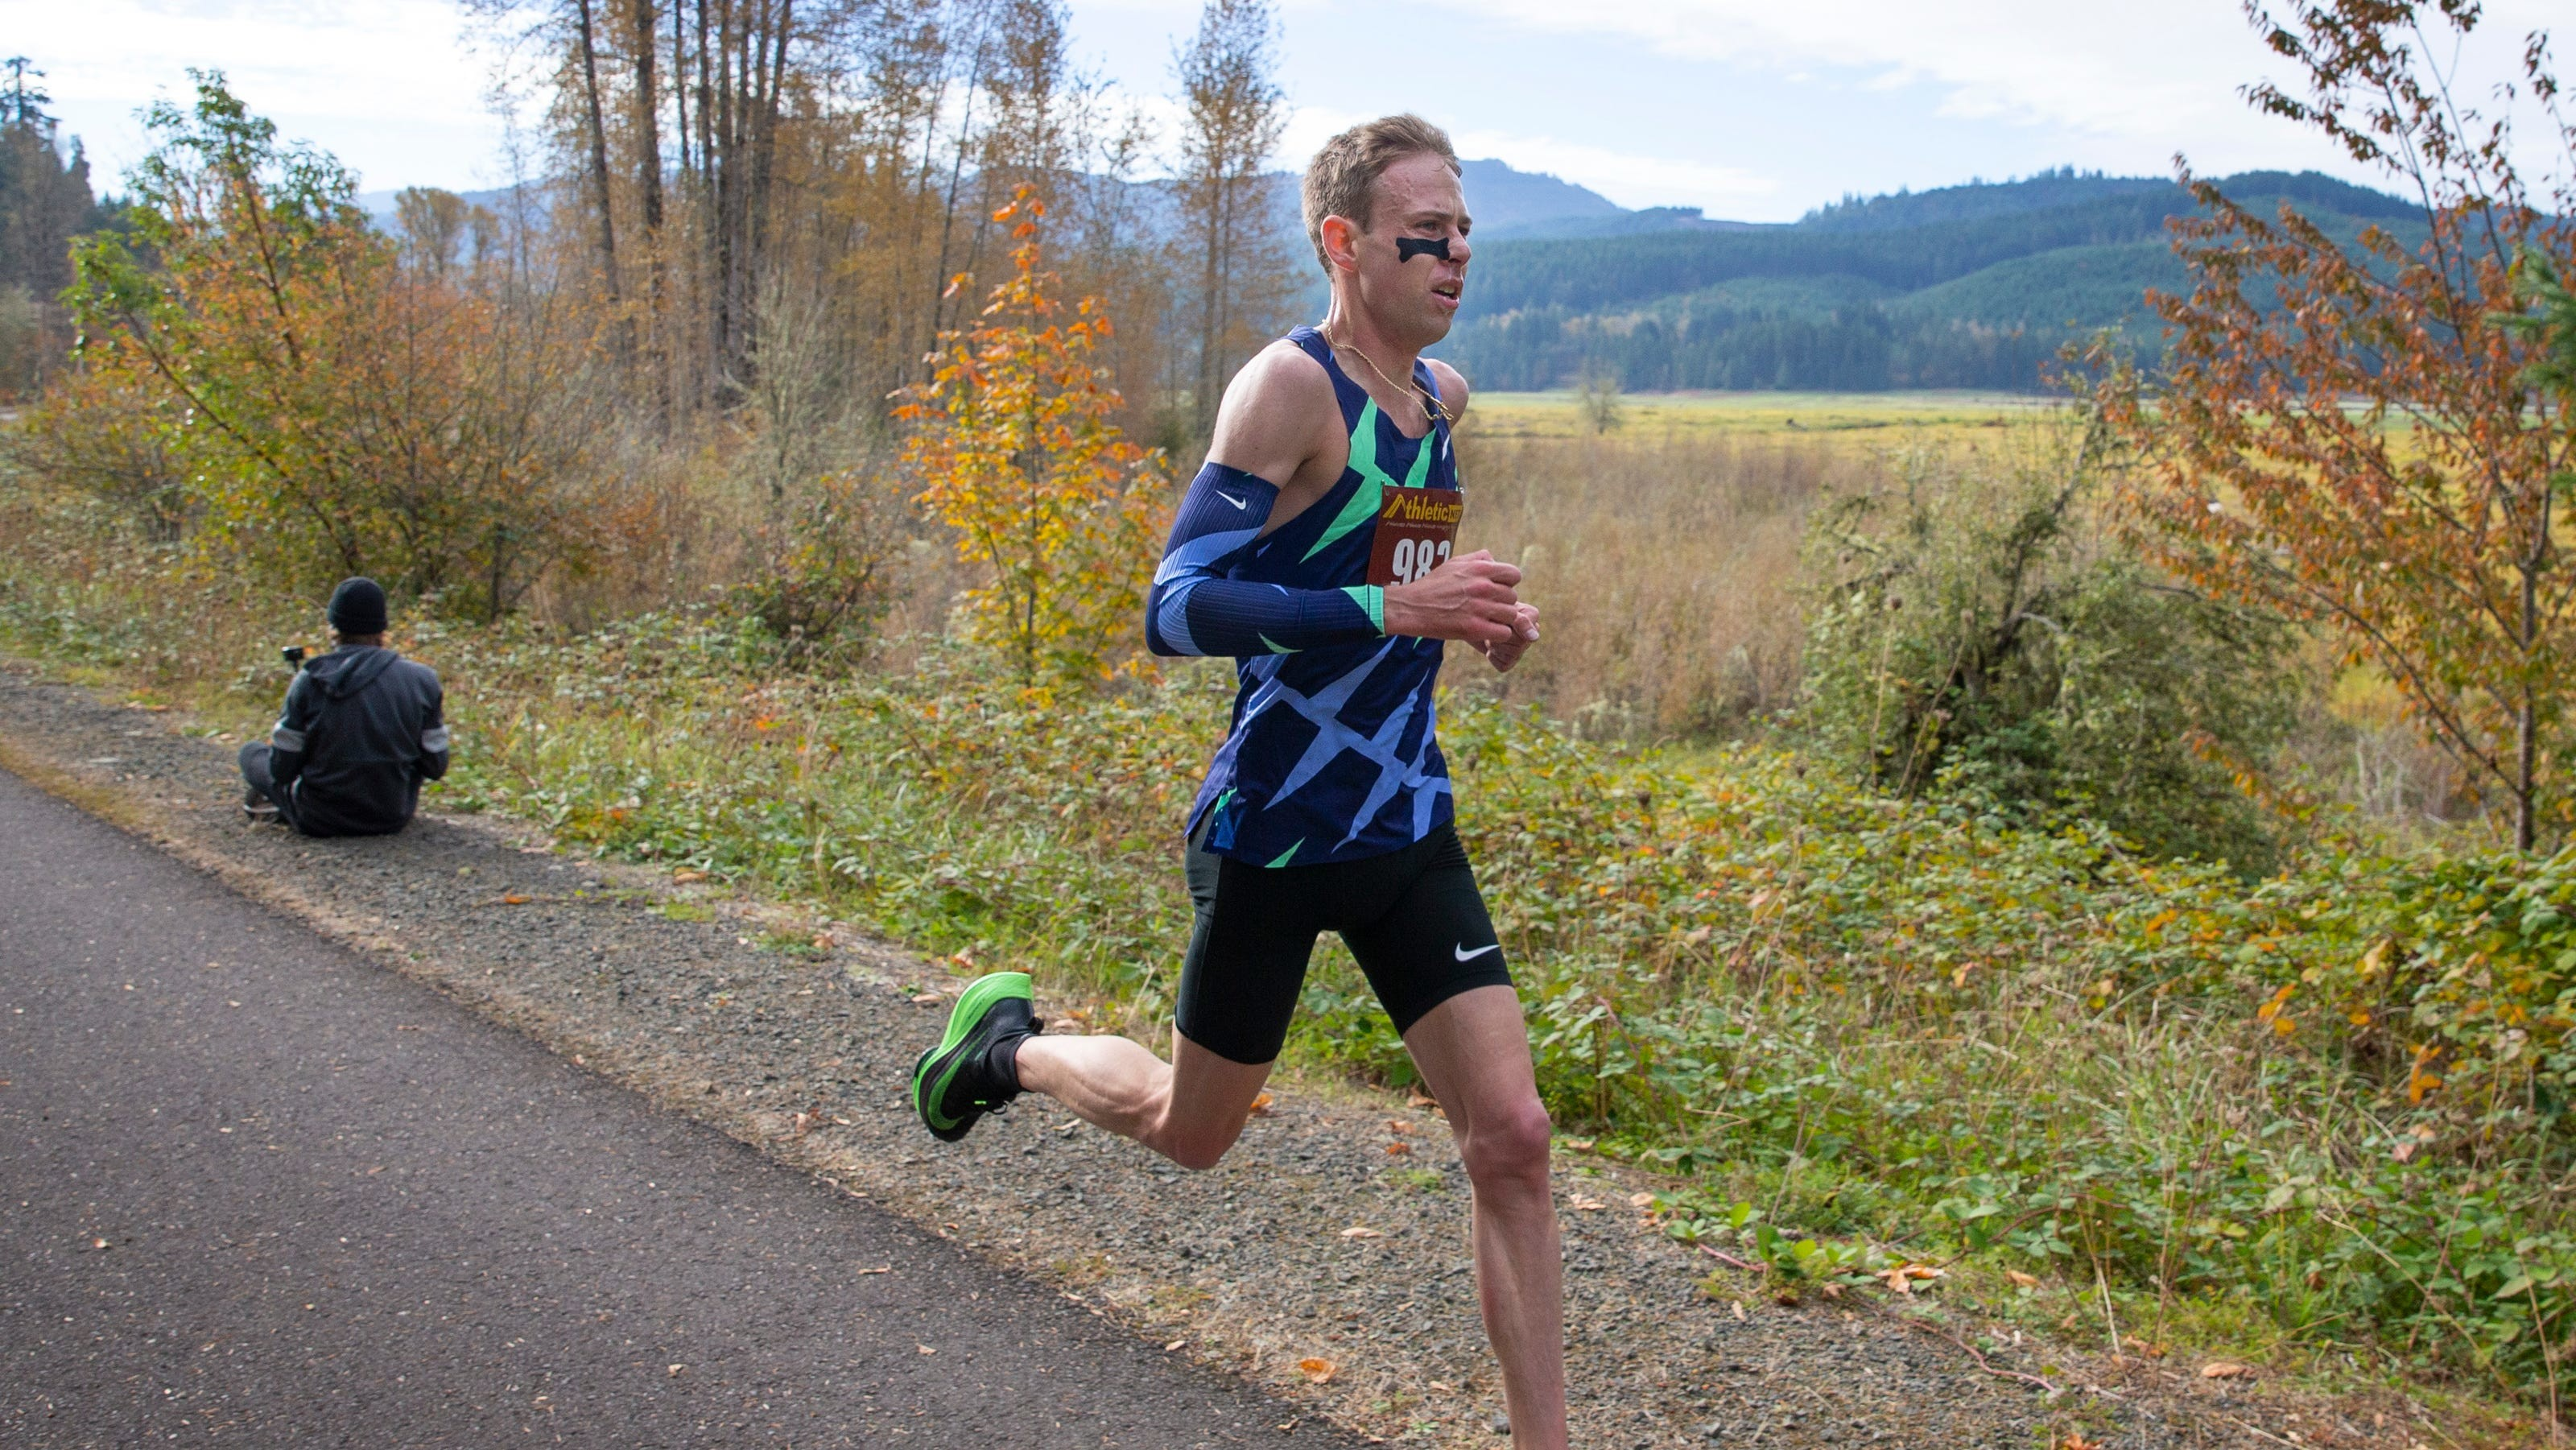 Galen Rupp breezes to victory in a popup half marathon in Lane County